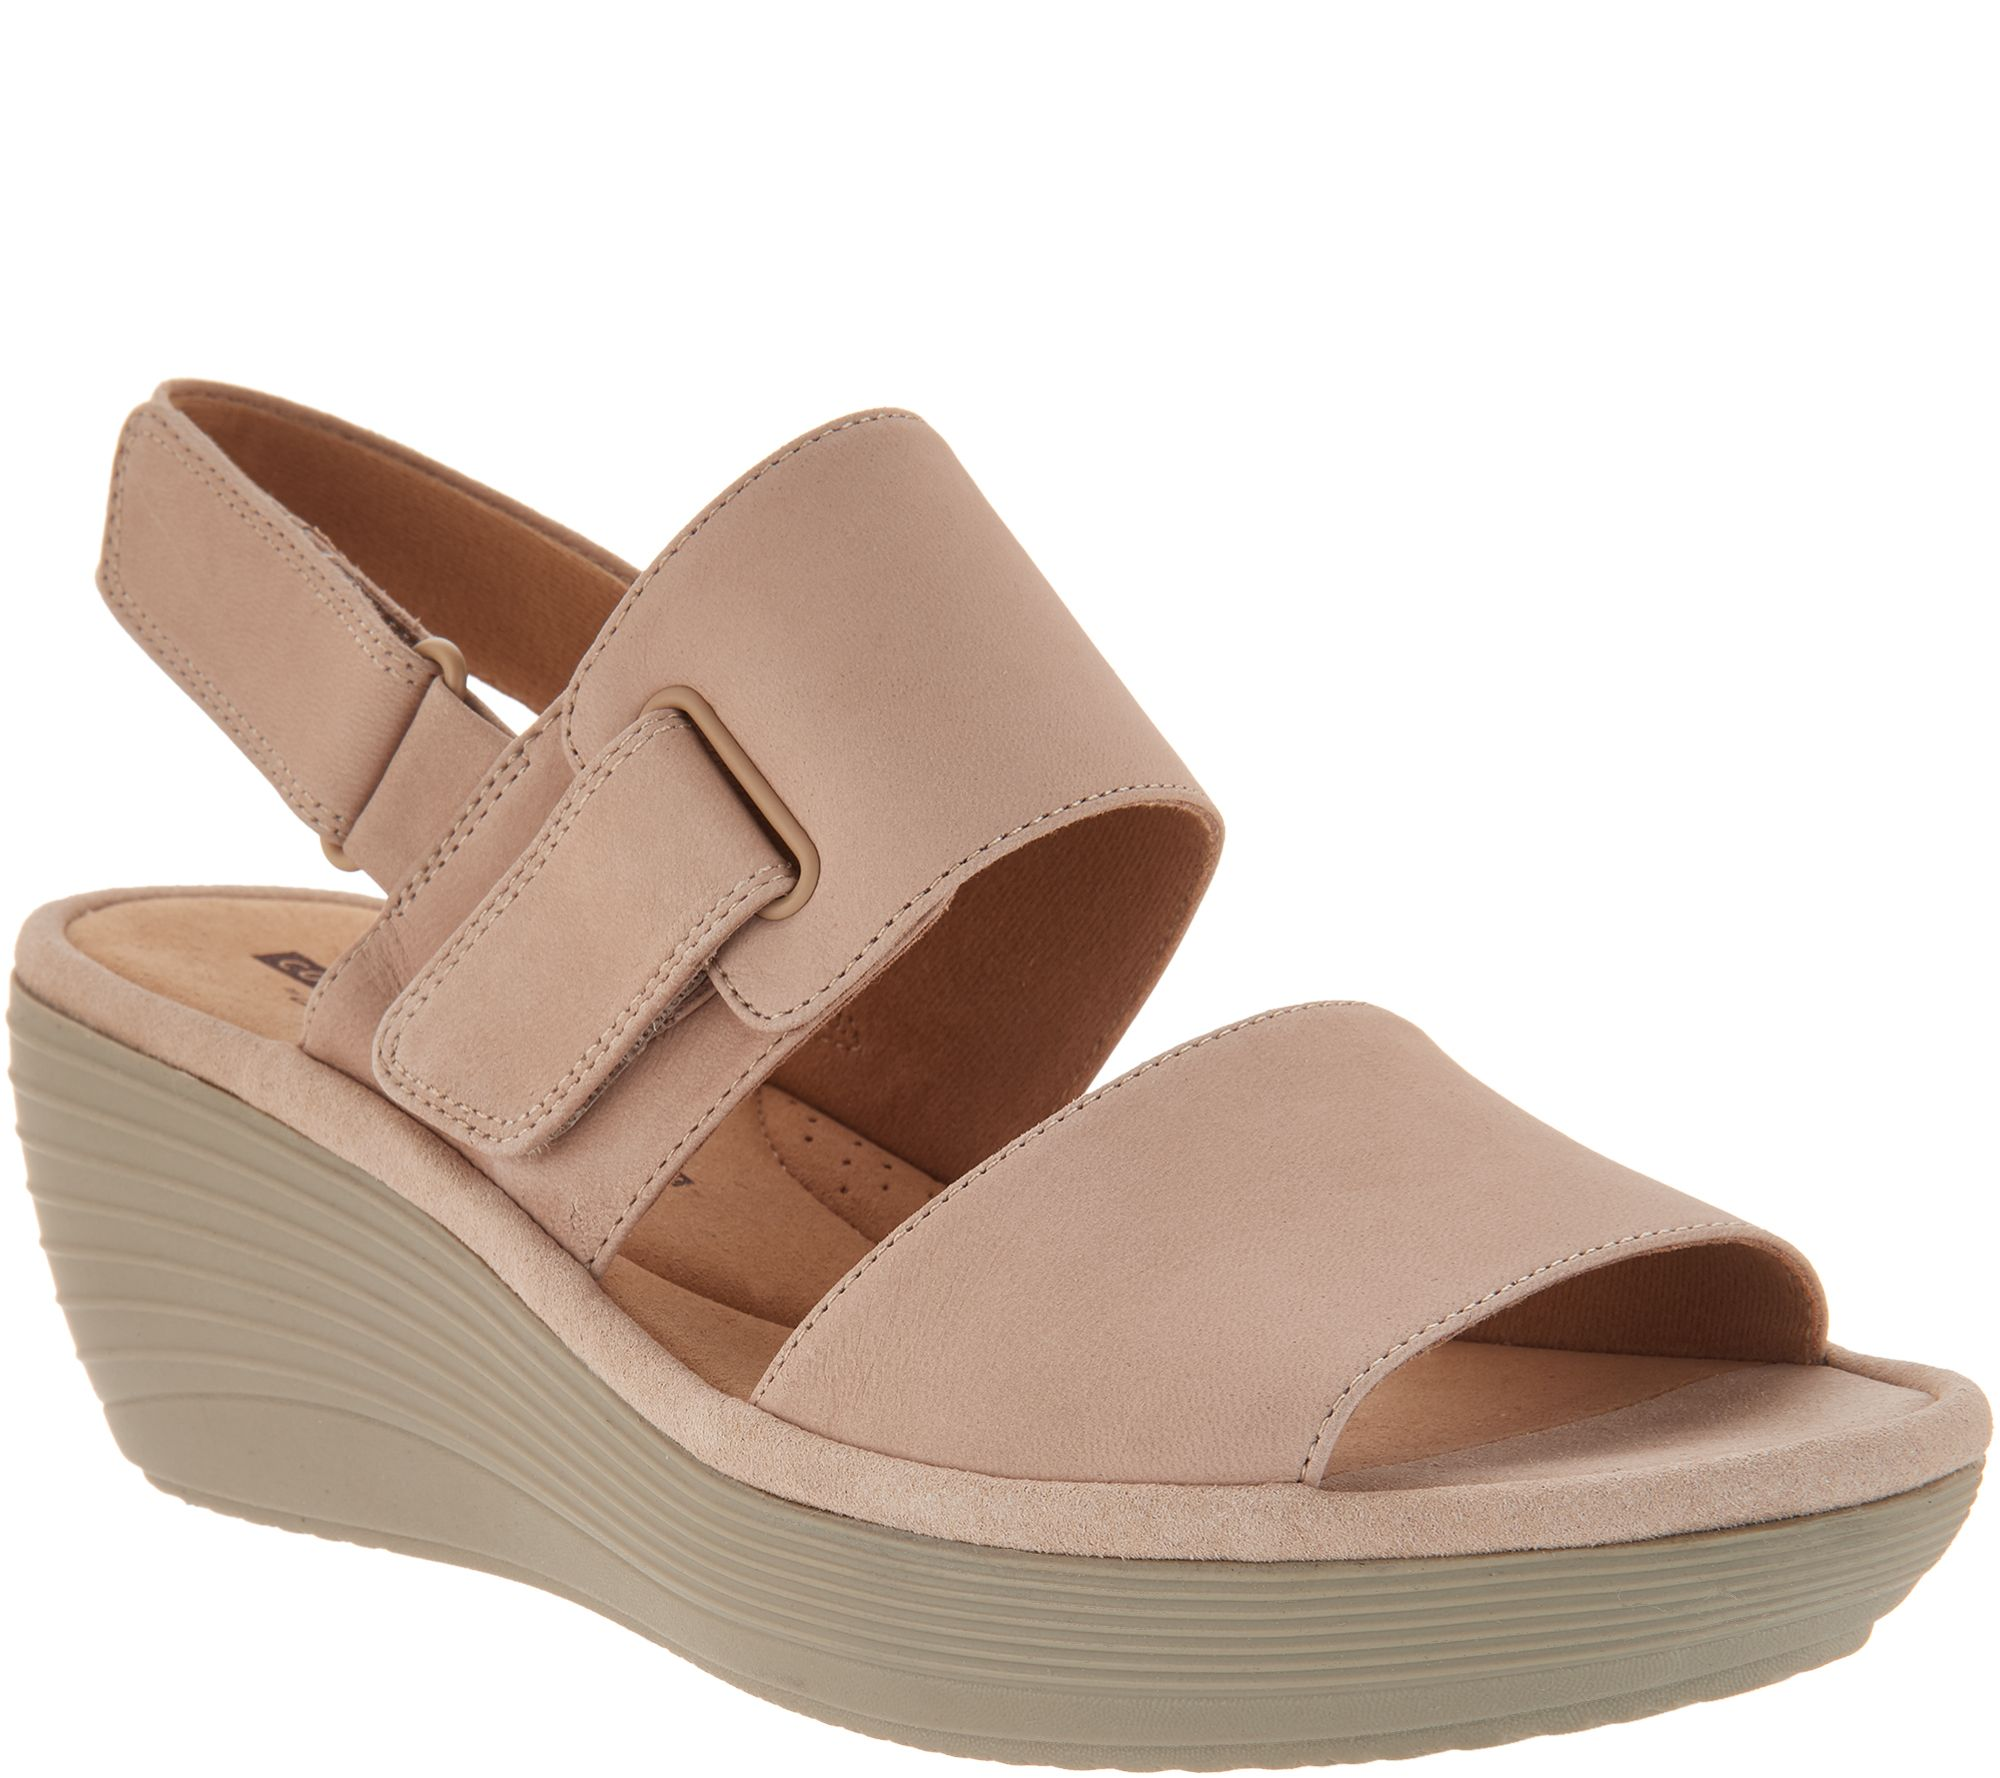 53431d93f763 Clarks Nubuck Leather Adjustable Wedge Sandals - Reedly Breen - Page 1 —  QVC.com